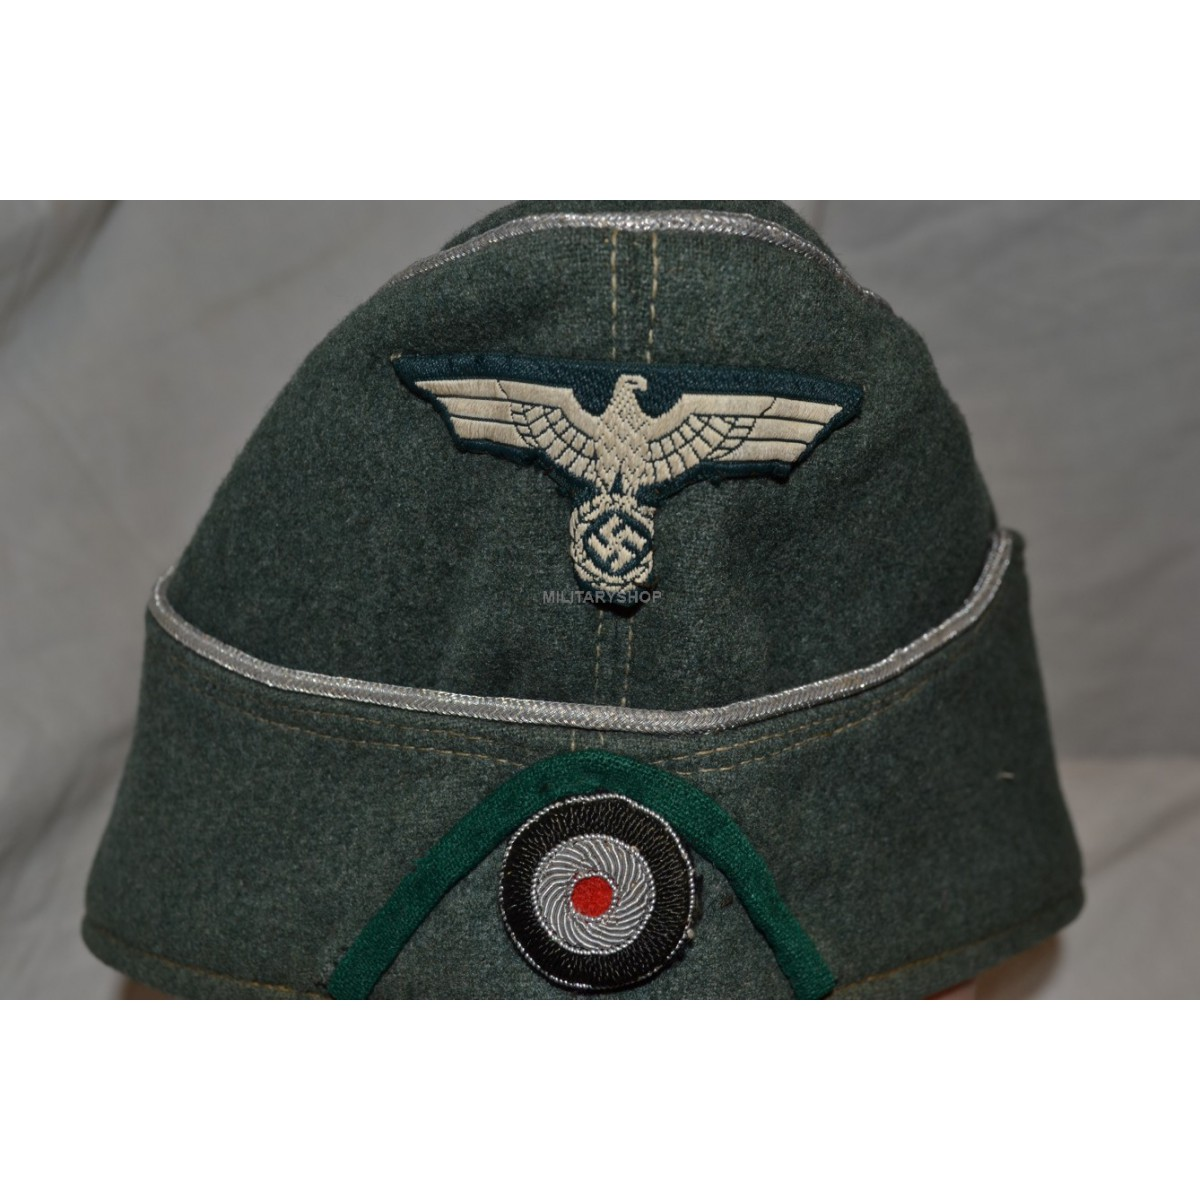 German jöger m38 overseas field cap